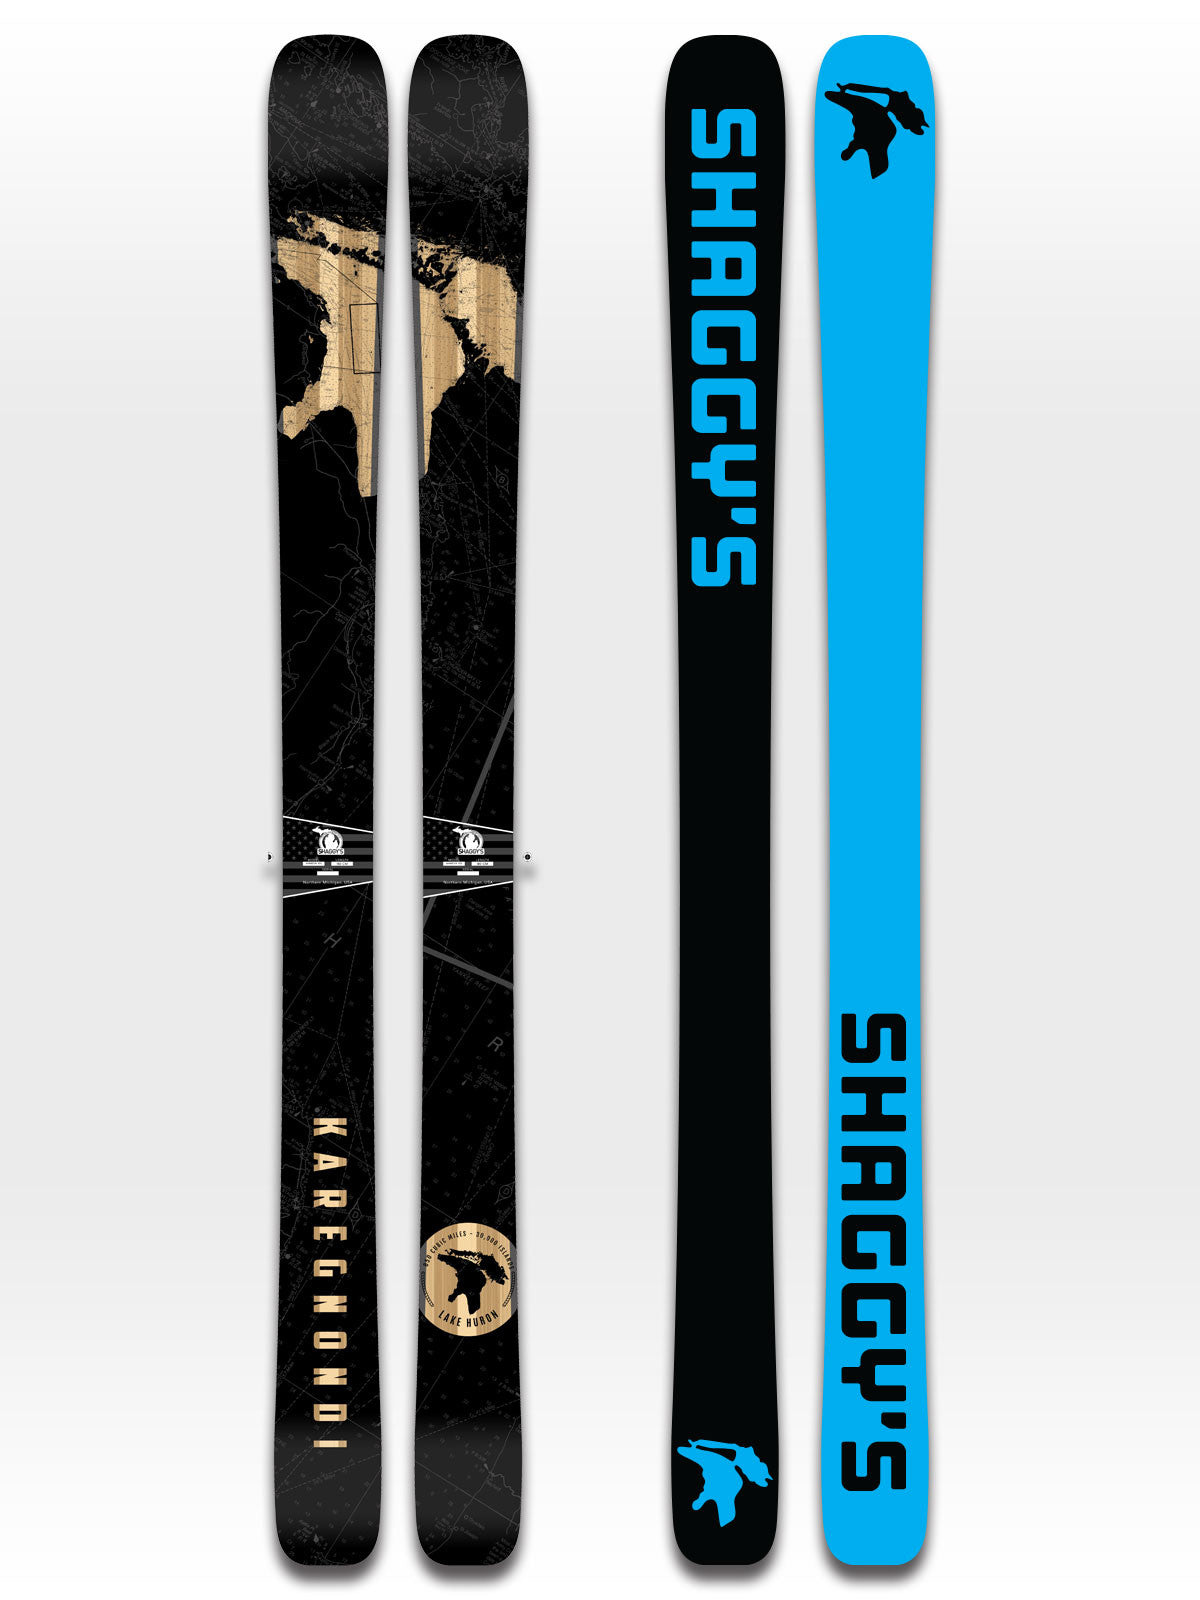 Limited Edition Lake Huron Skis - All Mountain Skis